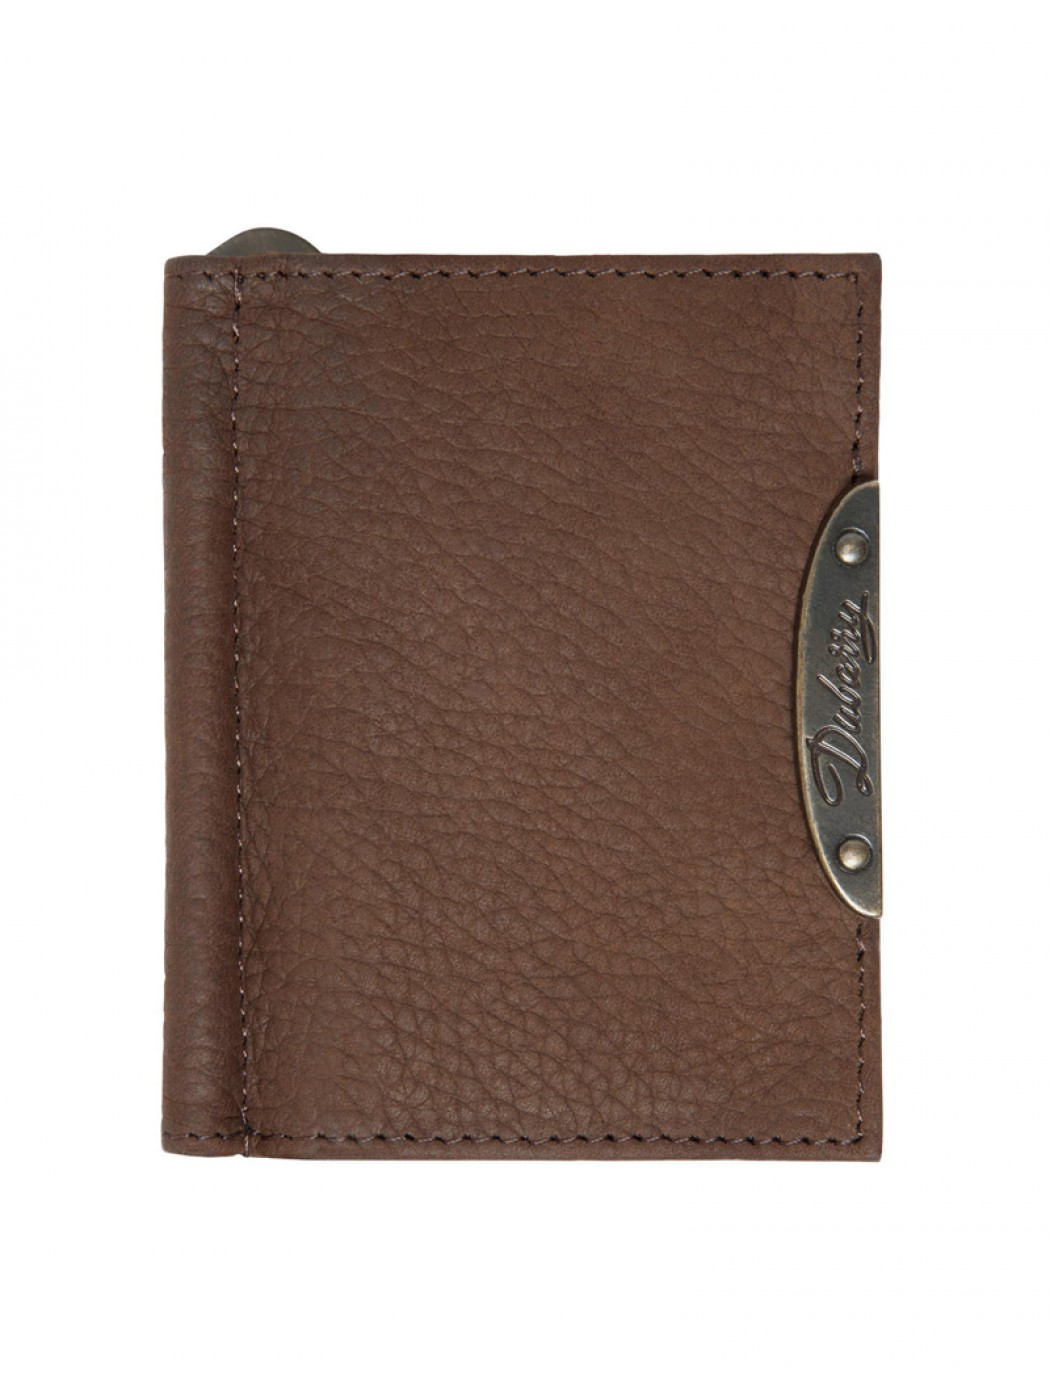 bray-money-card-clip-walnut-dubarry-1